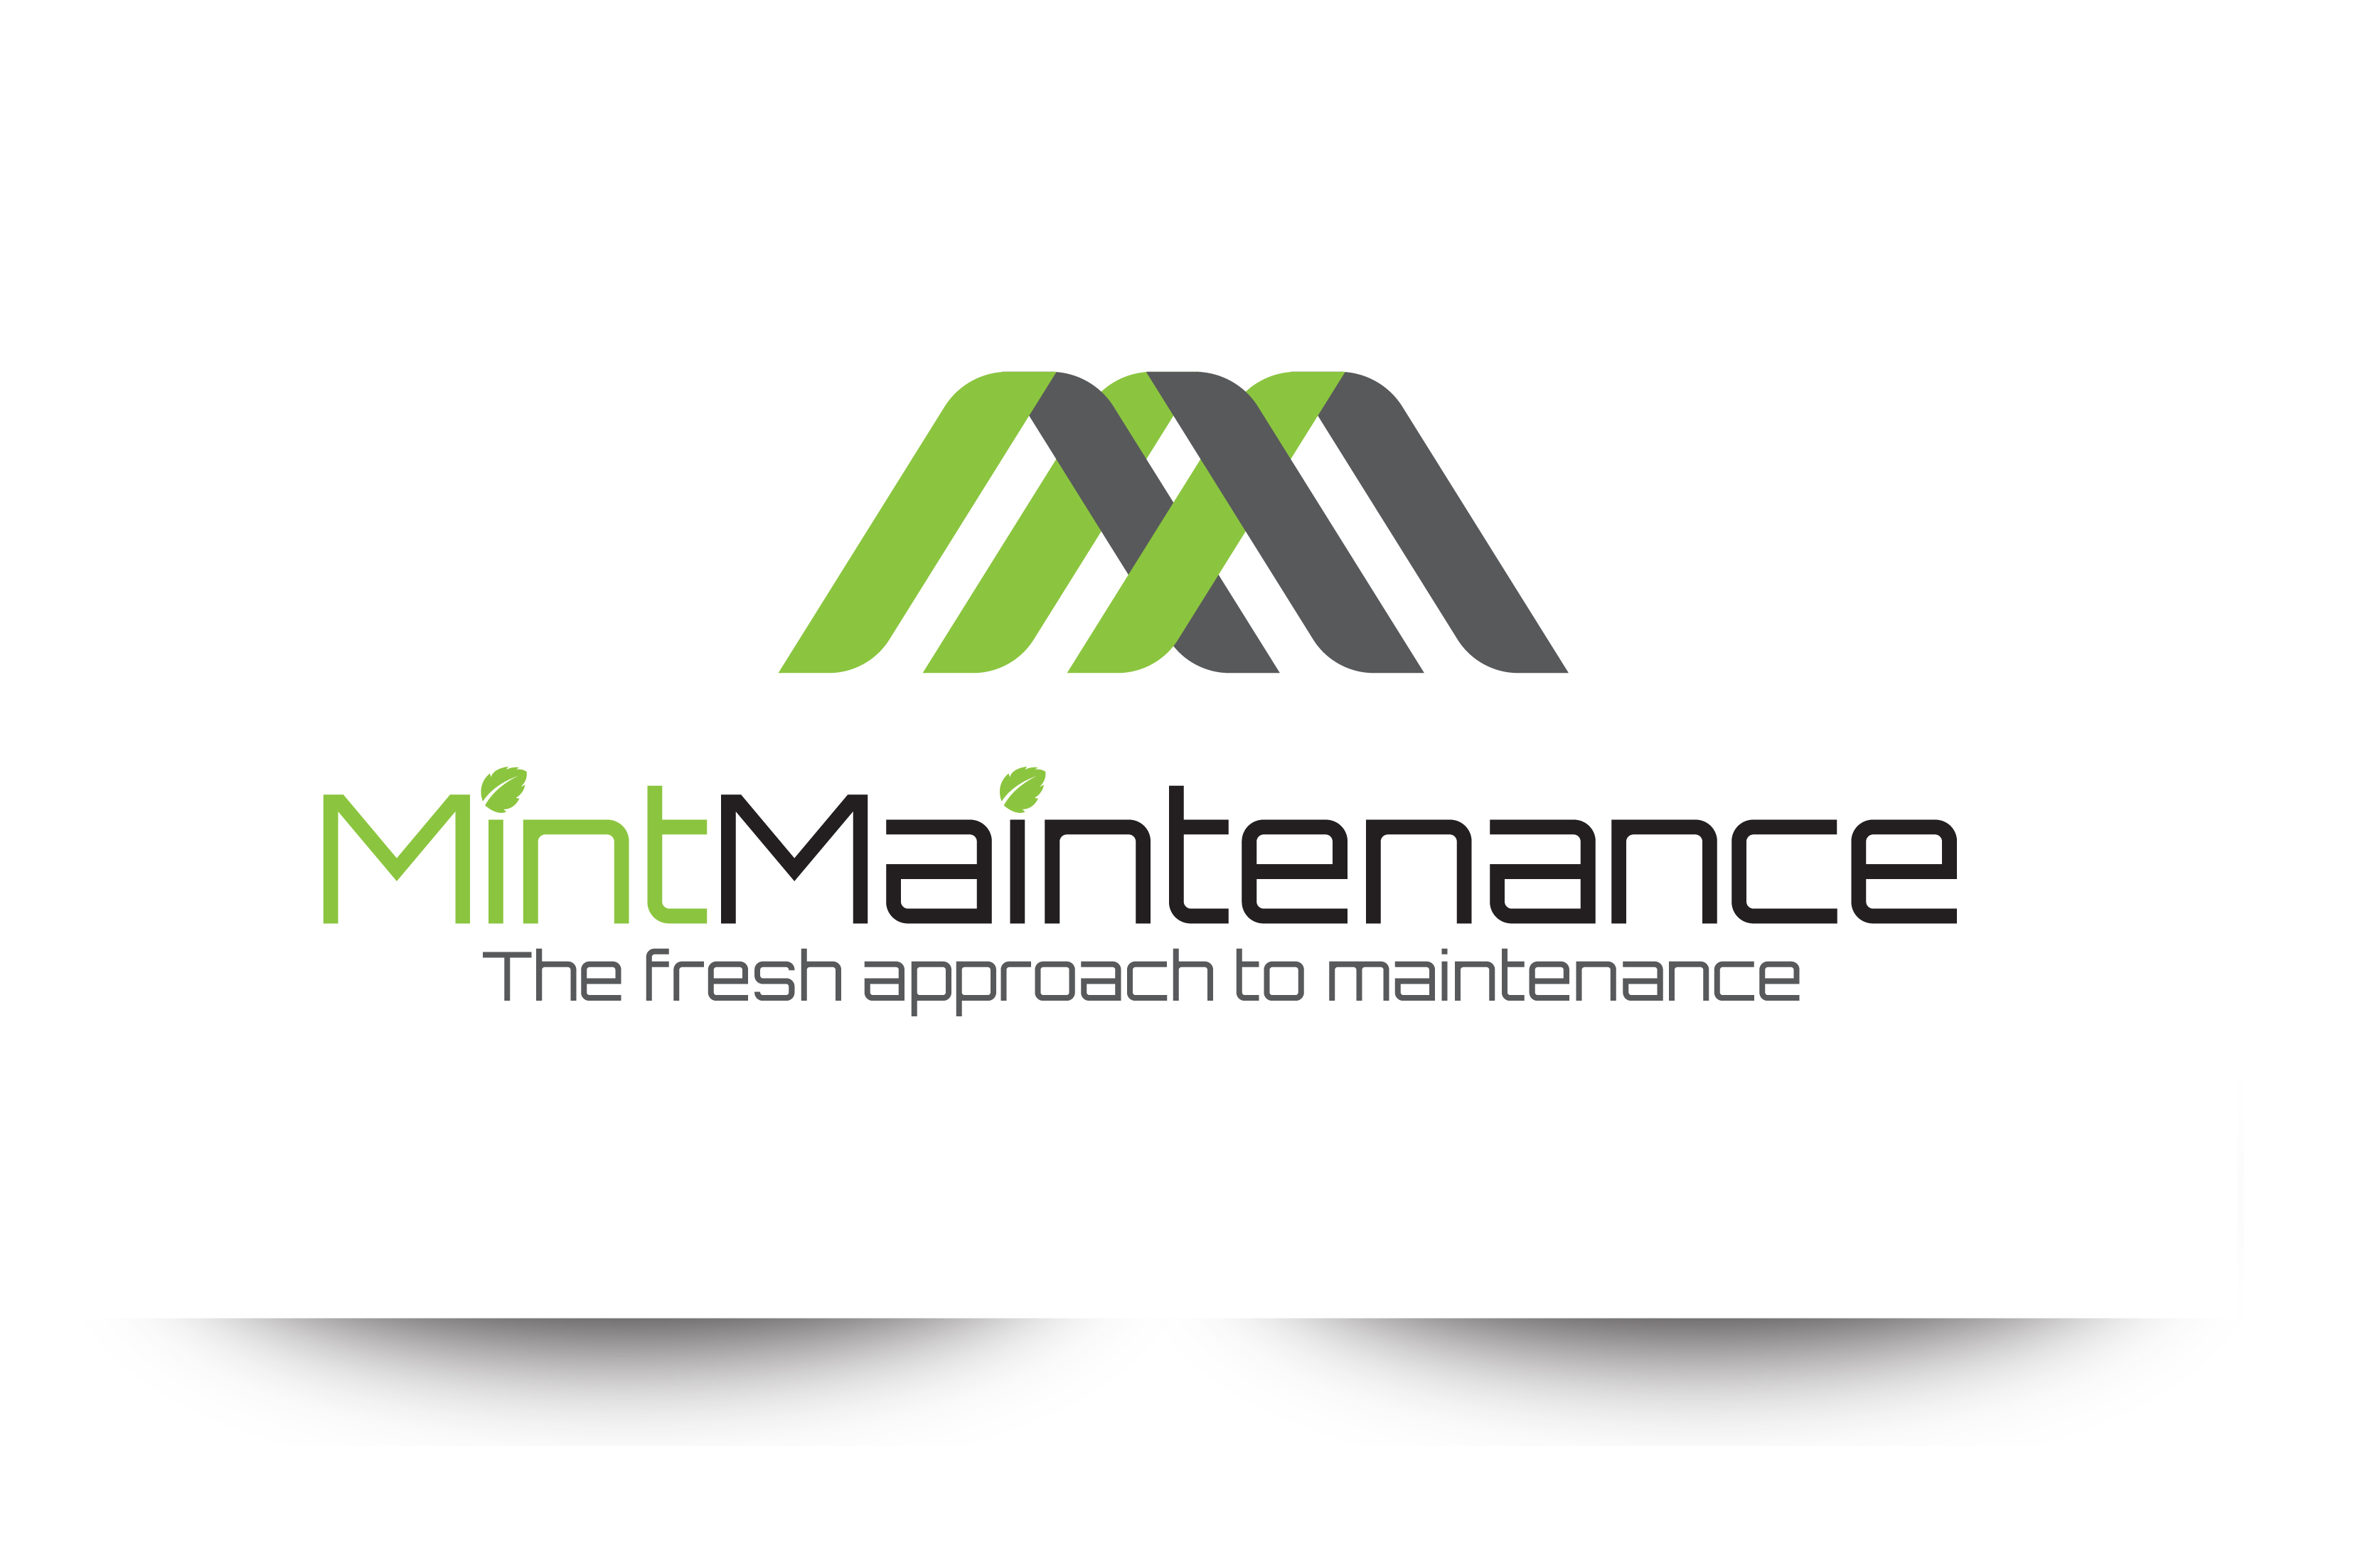 Logo Design by demang - Entry No. 164 in the Logo Design Contest Creative Logo Design for Mint Maintenance.